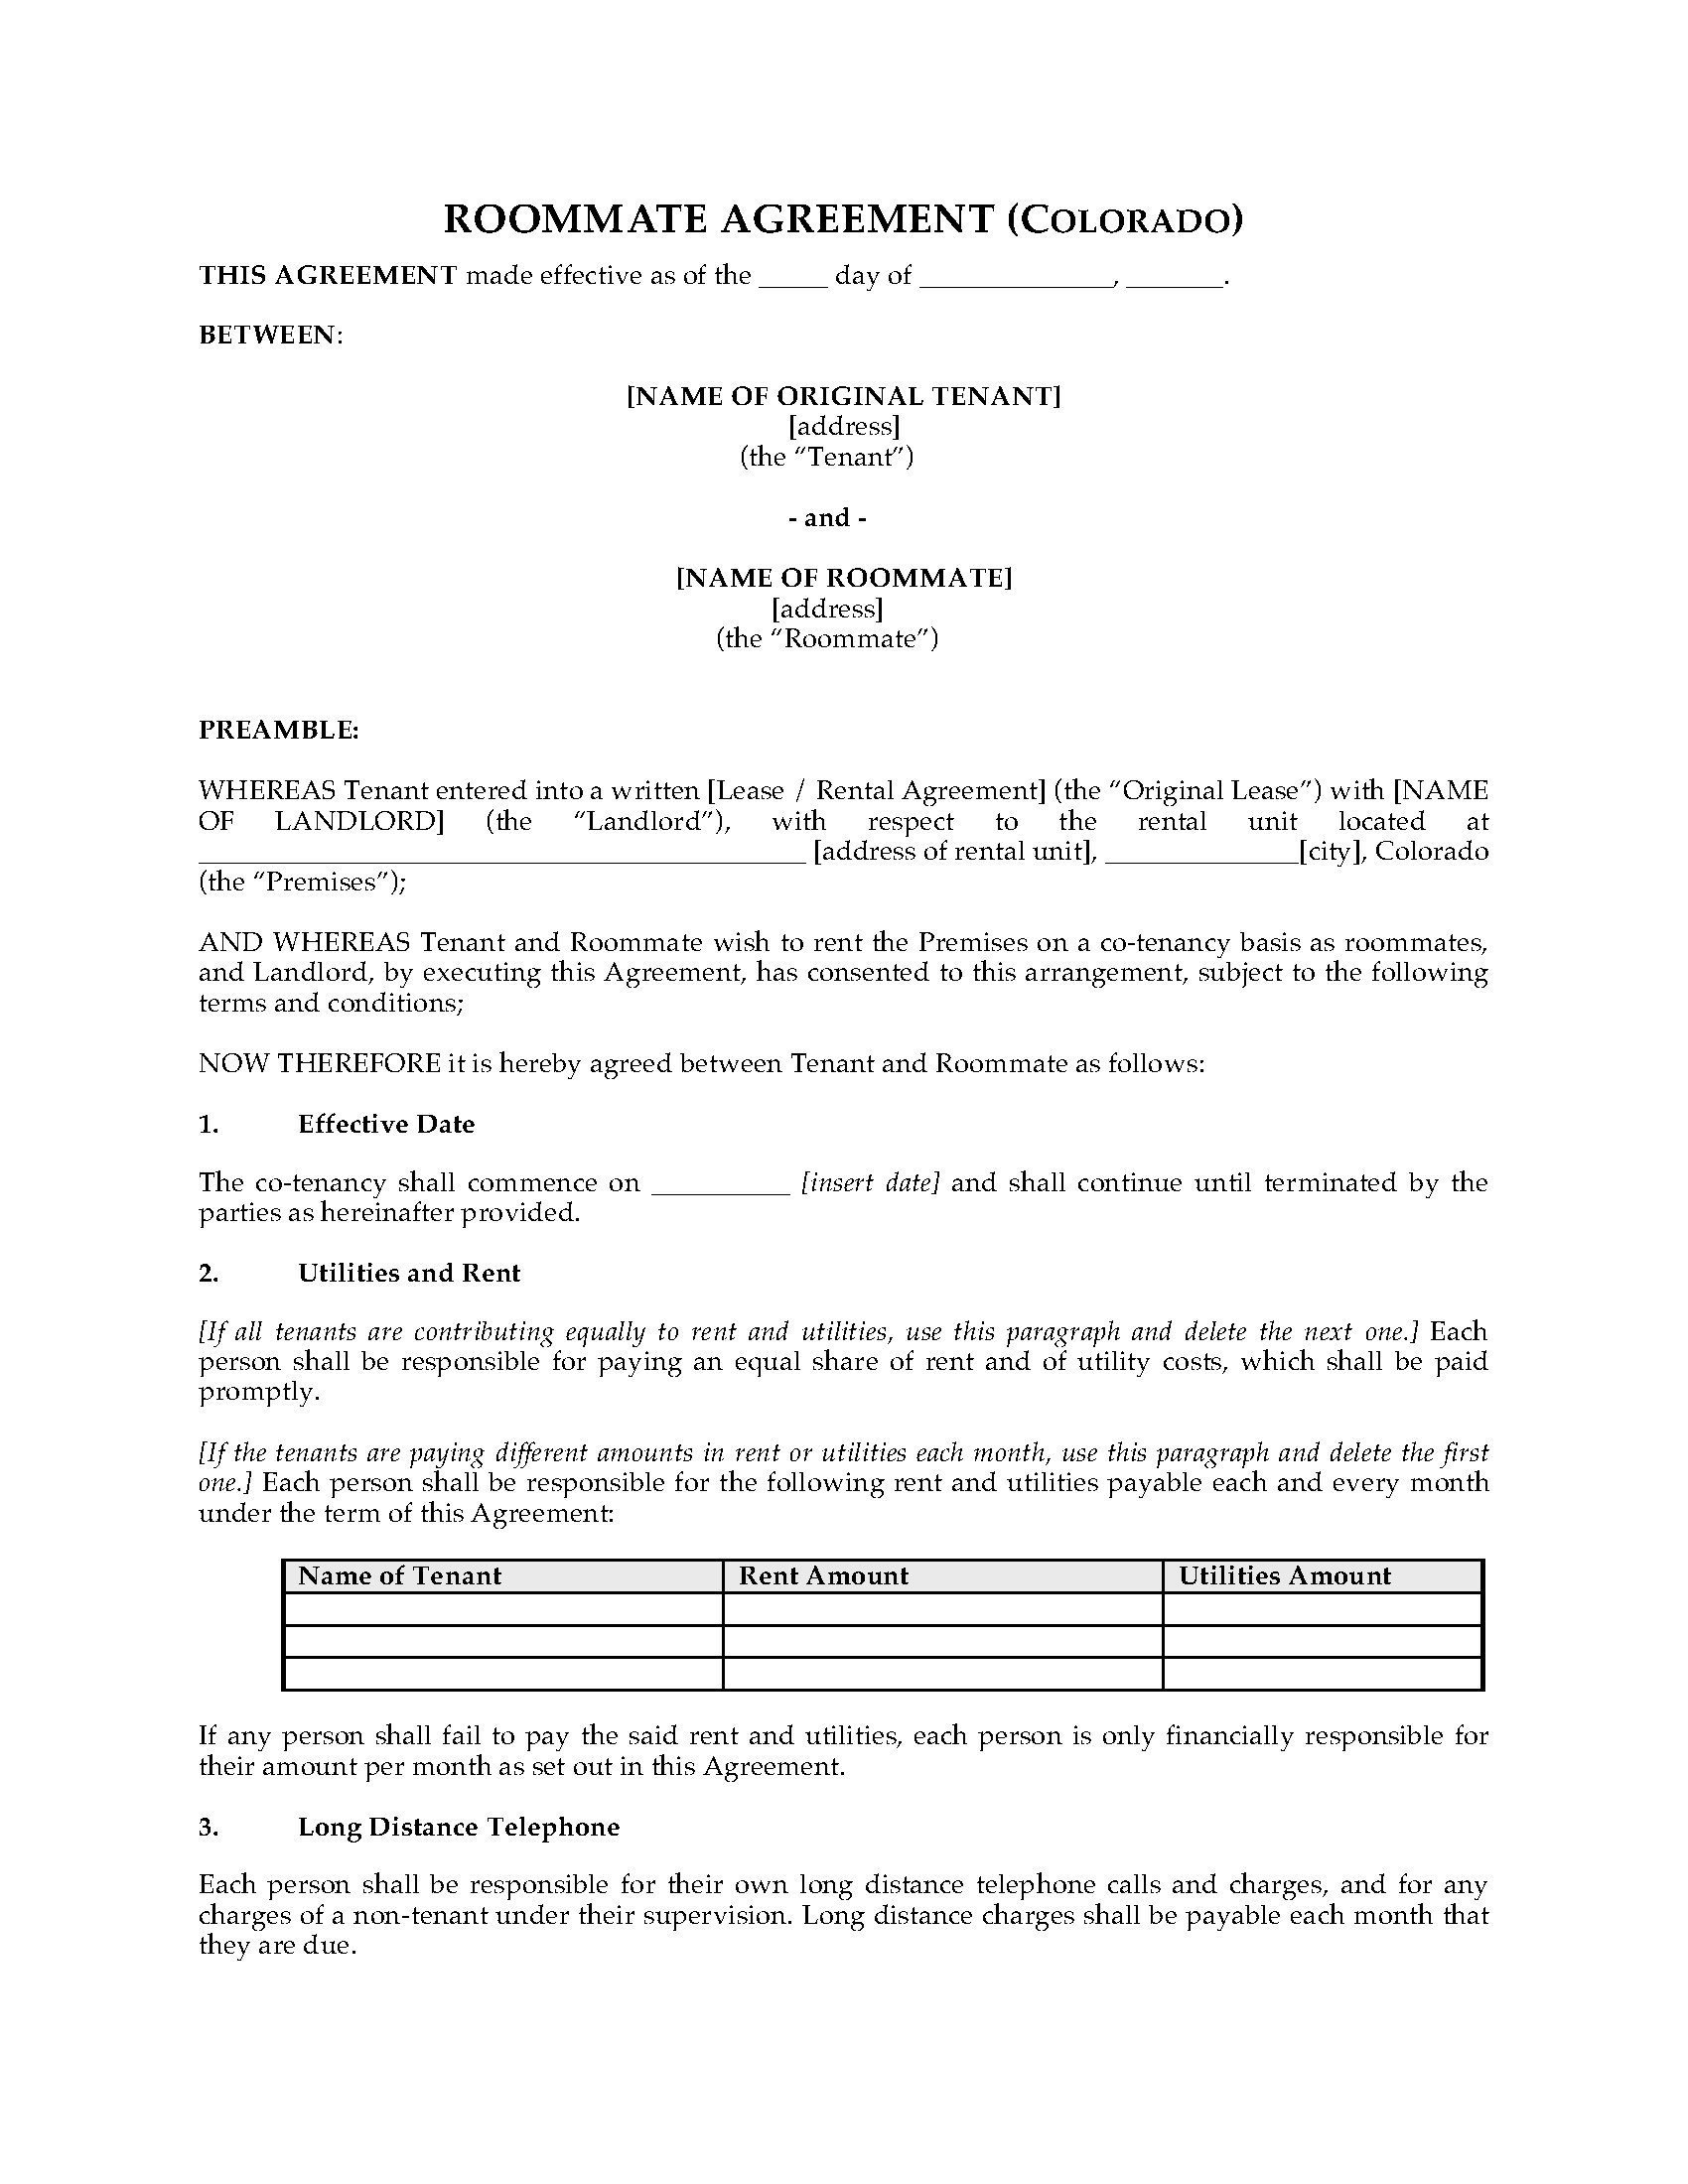 Colorado Roommate Agreement Legal Forms And Business Templates